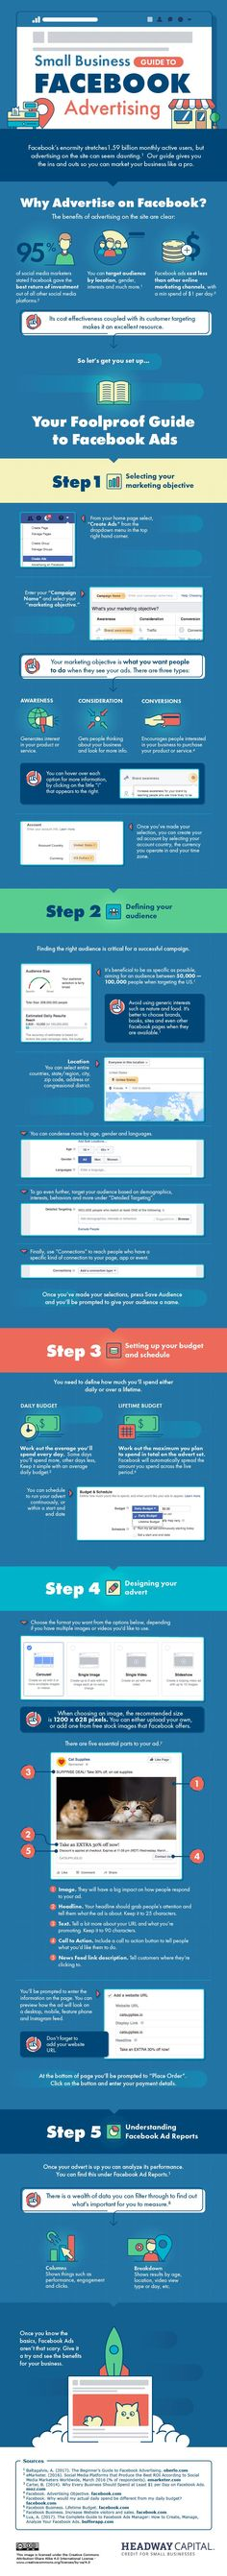 The Foolproof Guide to Advertising Your Small #Business on #Facebook #Infographic #SocialMedia